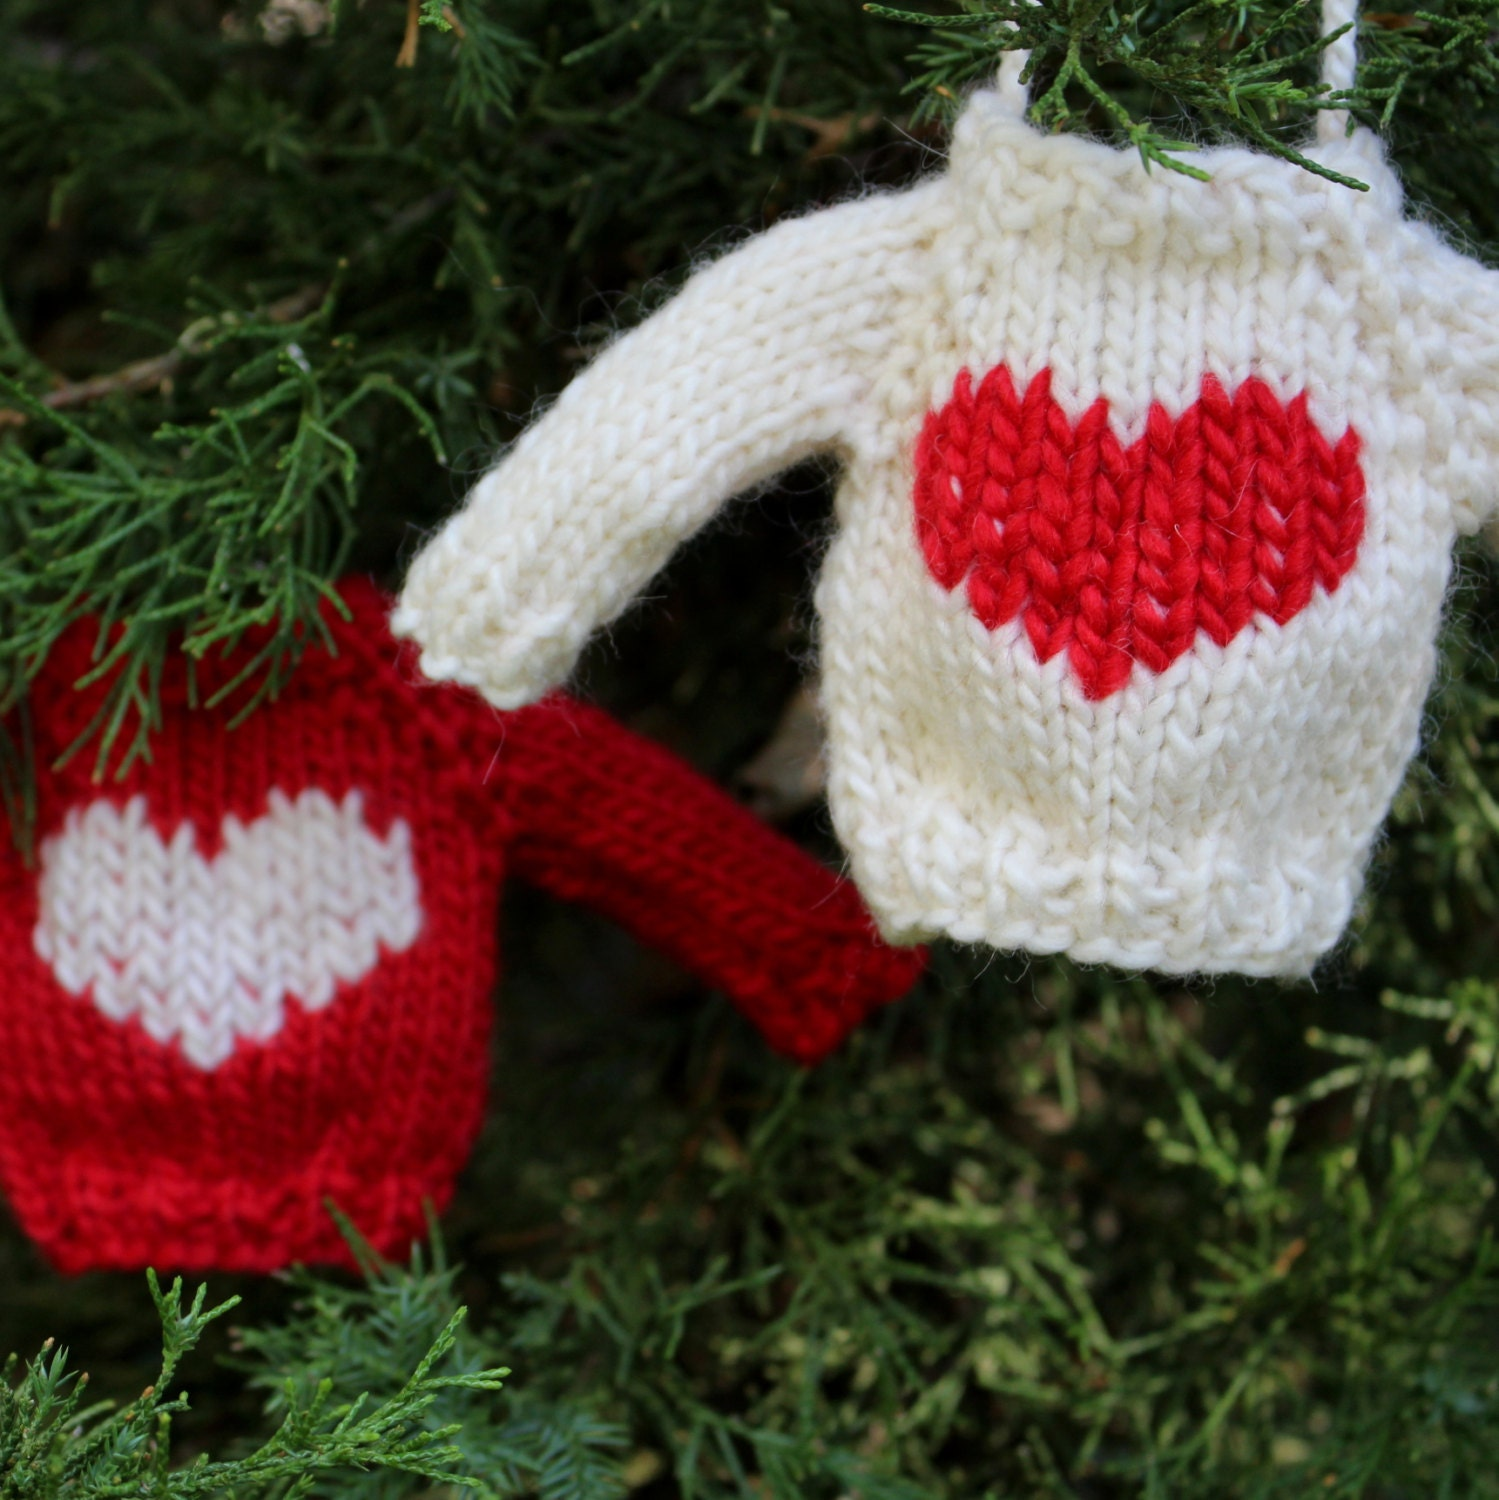 Knit Patterns Christmas Ornaments : Knitting PATTERN / Christmas Ornament / by FiftyFourTenStudio